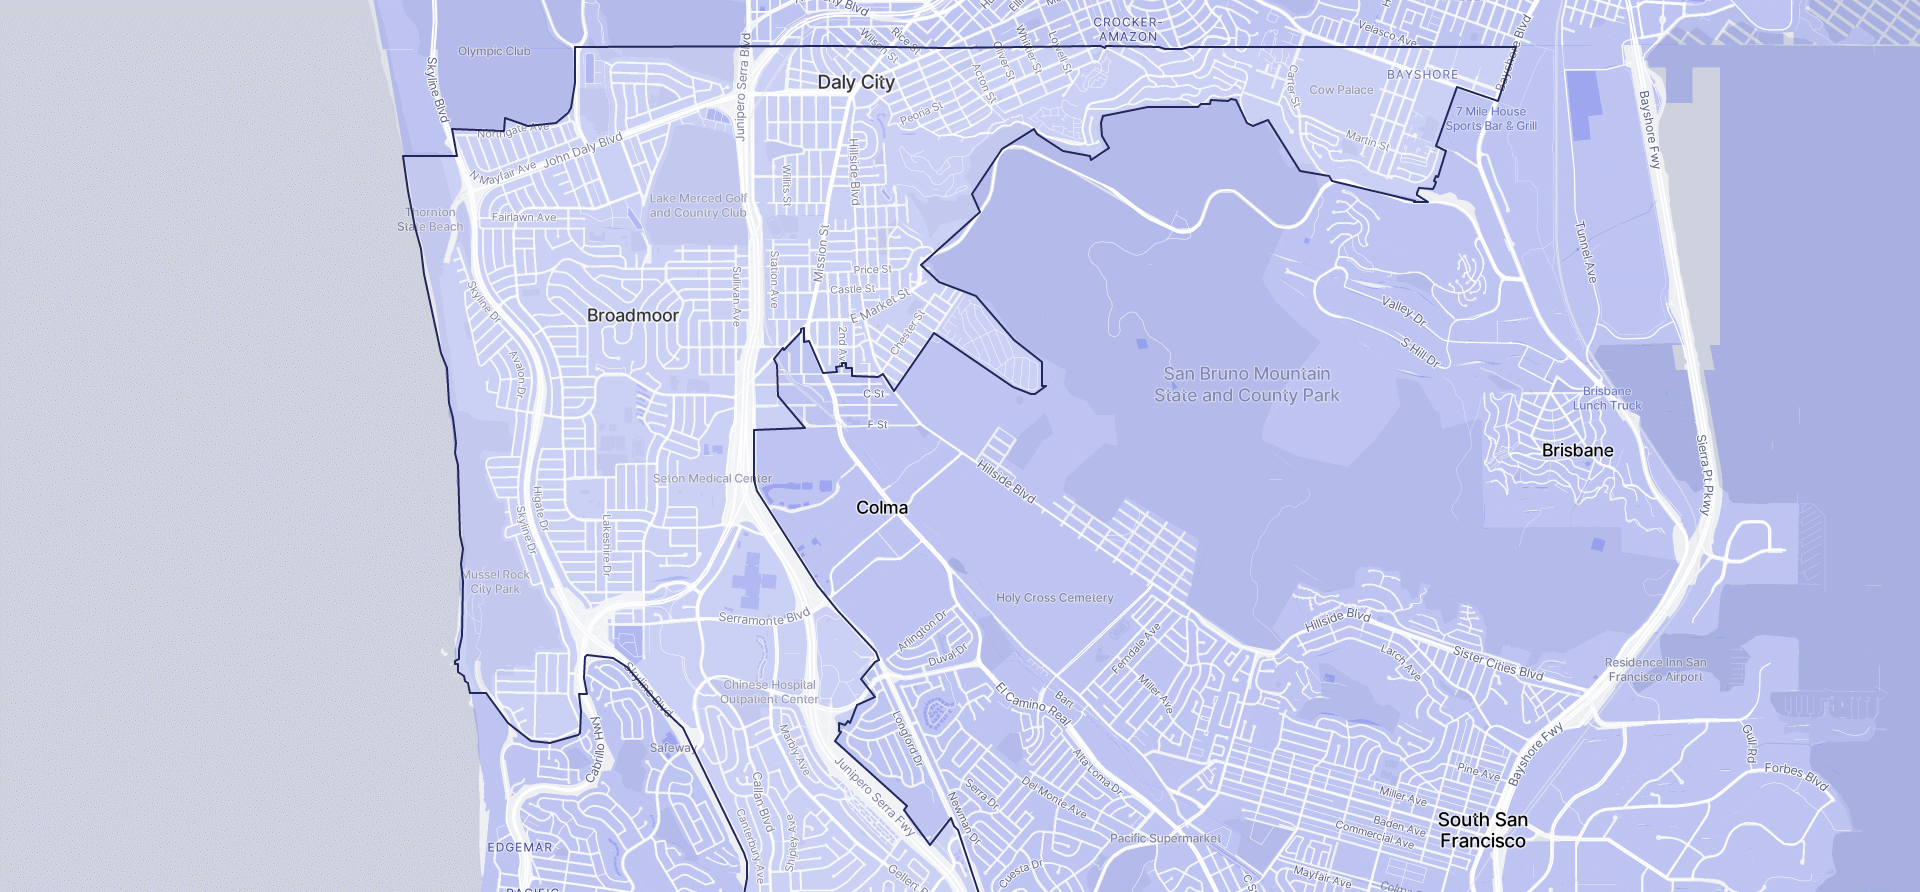 Image of Daly City boundaries on a map.